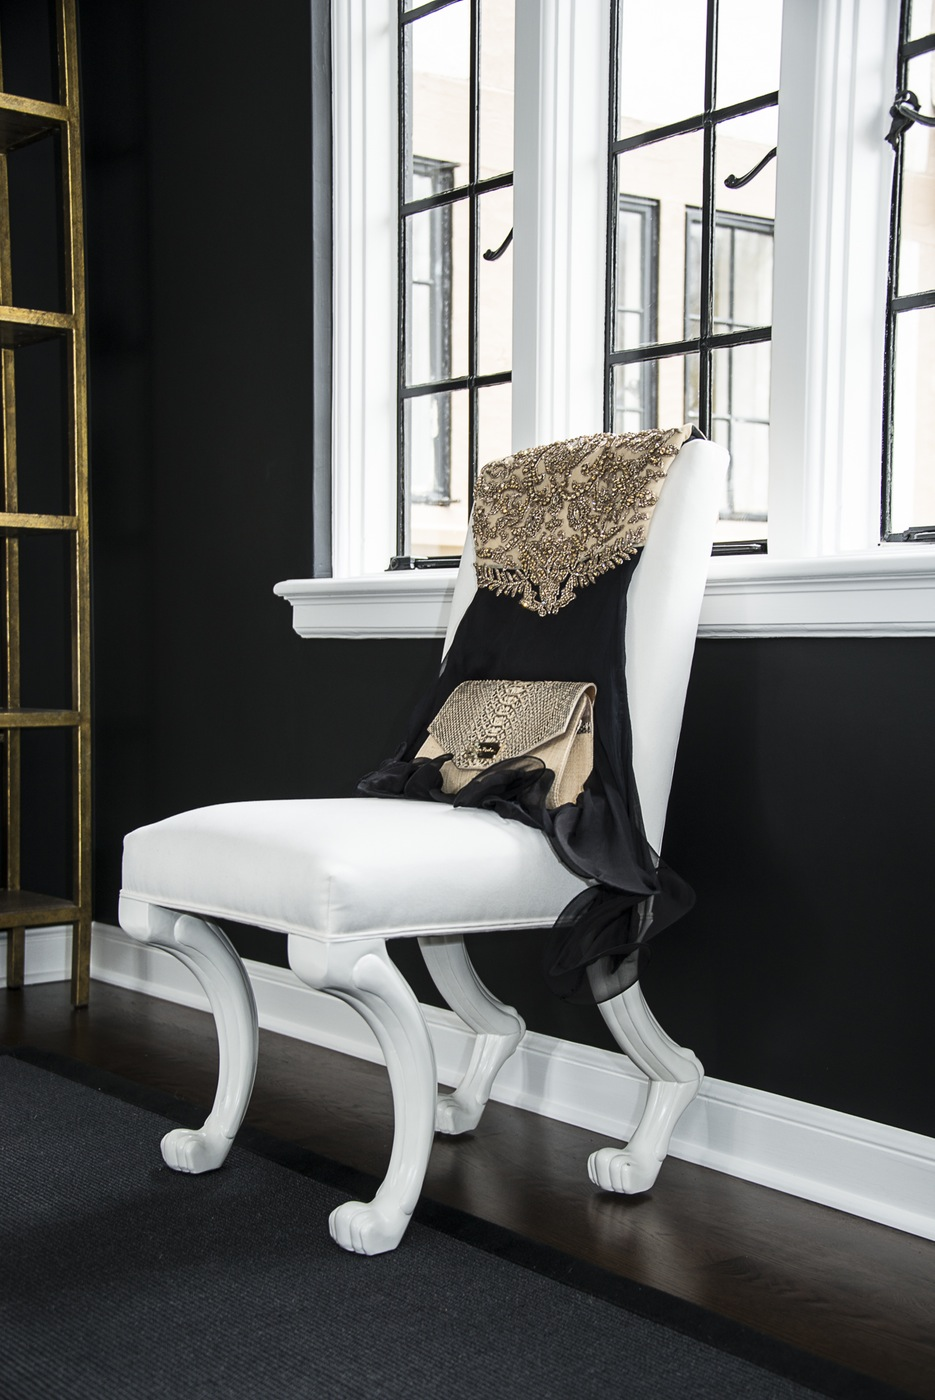 fashion blogger transitional black and white home office inspiration ideas gold hanging mirrors walk in closet work space feminine hollywood celebrity glam eclectic decor